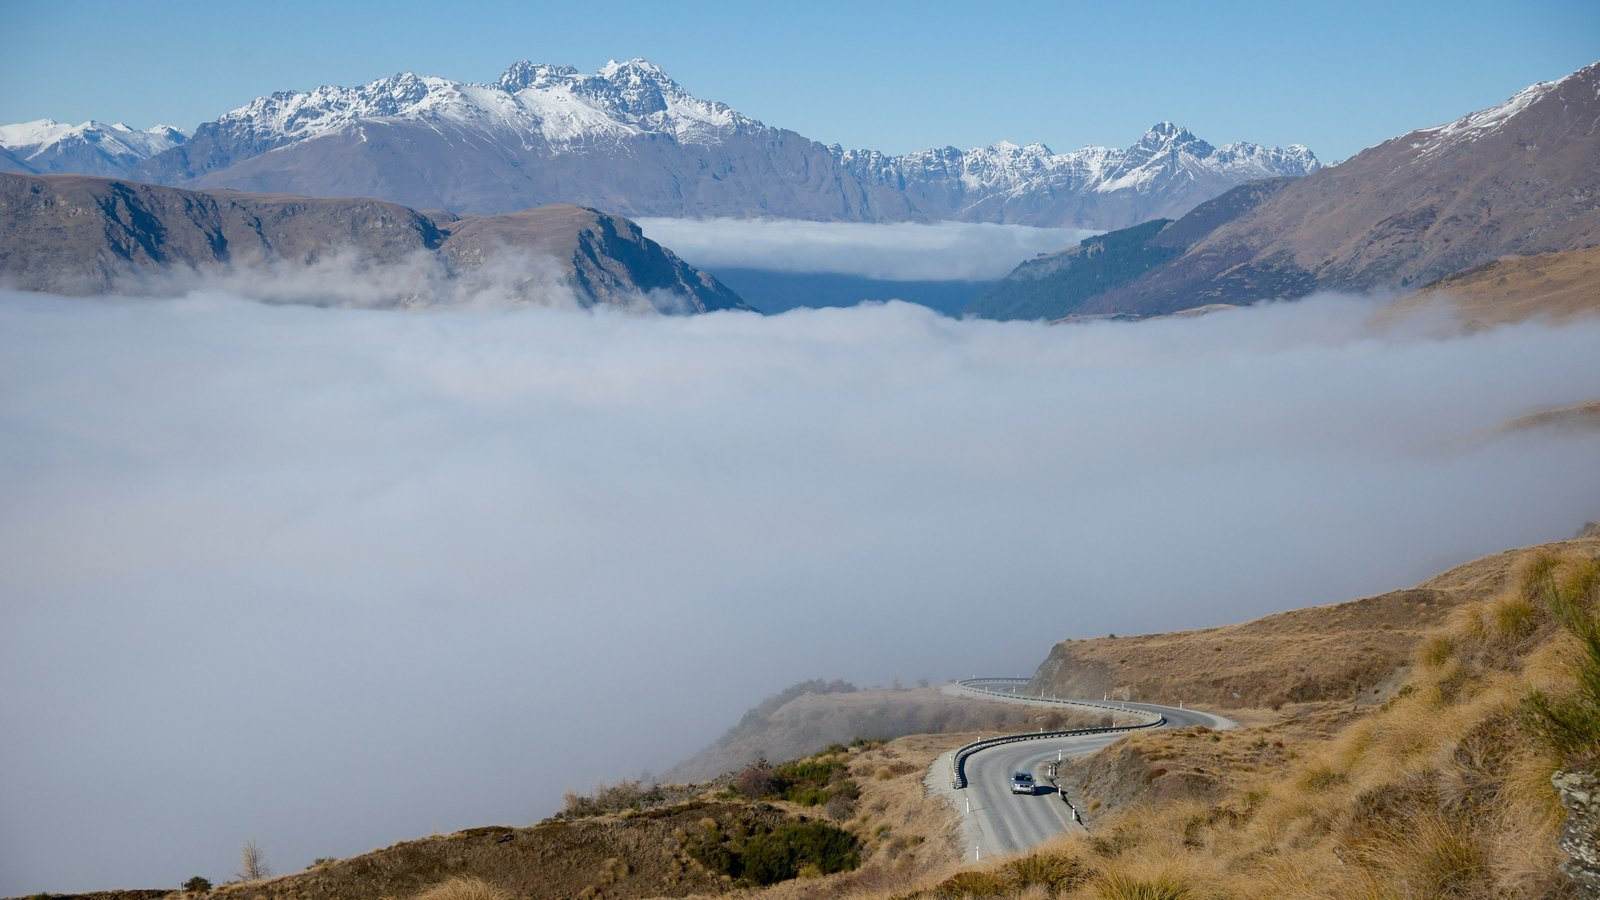 Queenstown featuring landscape views, mist or fog and mountains